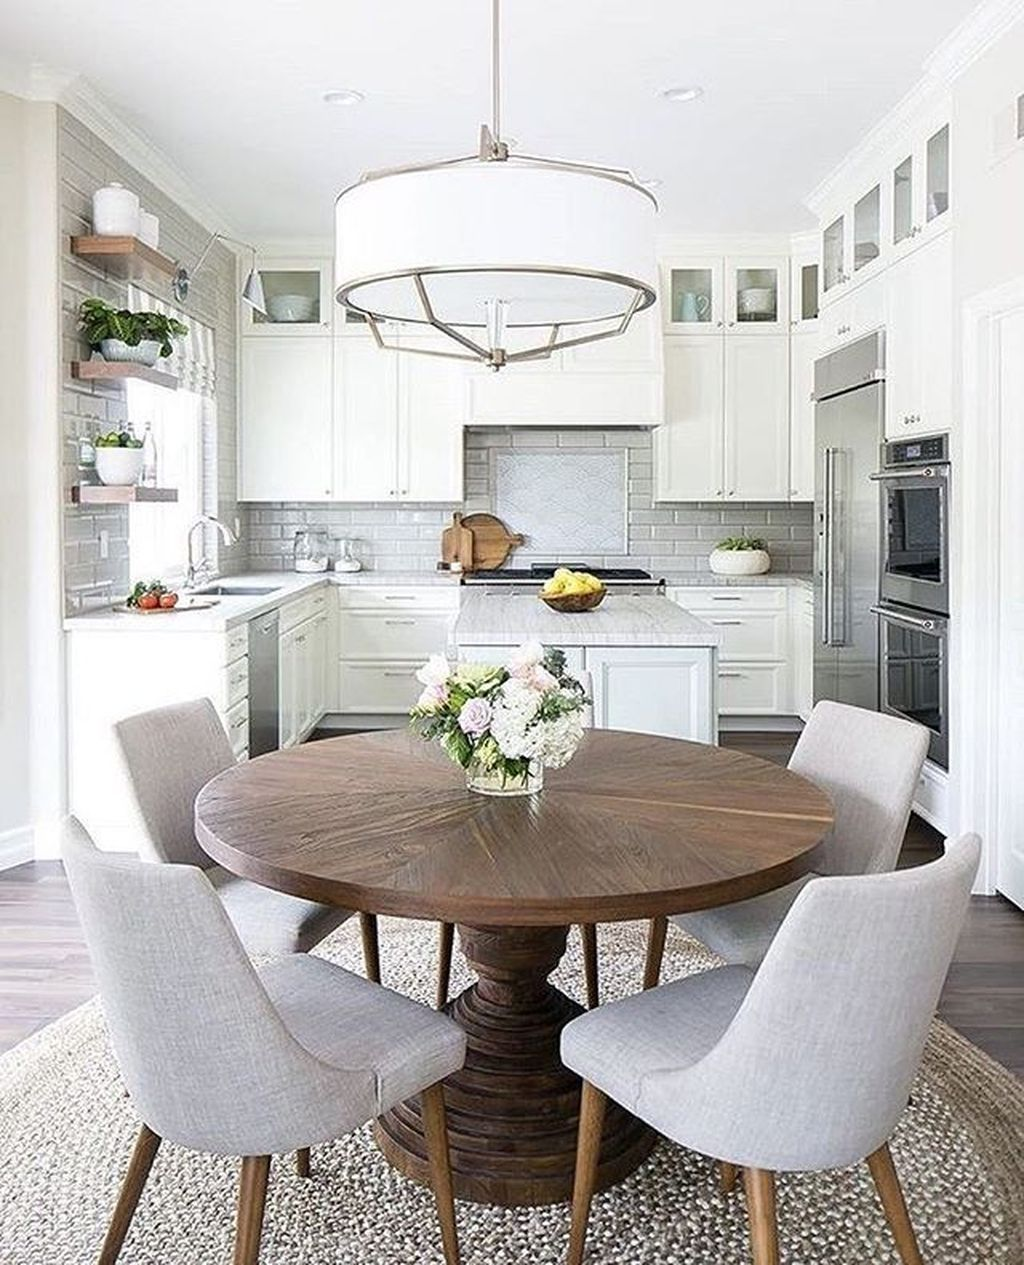 west elm dining room | 38 The Concept Of A Table And Chair For Dining Room ...